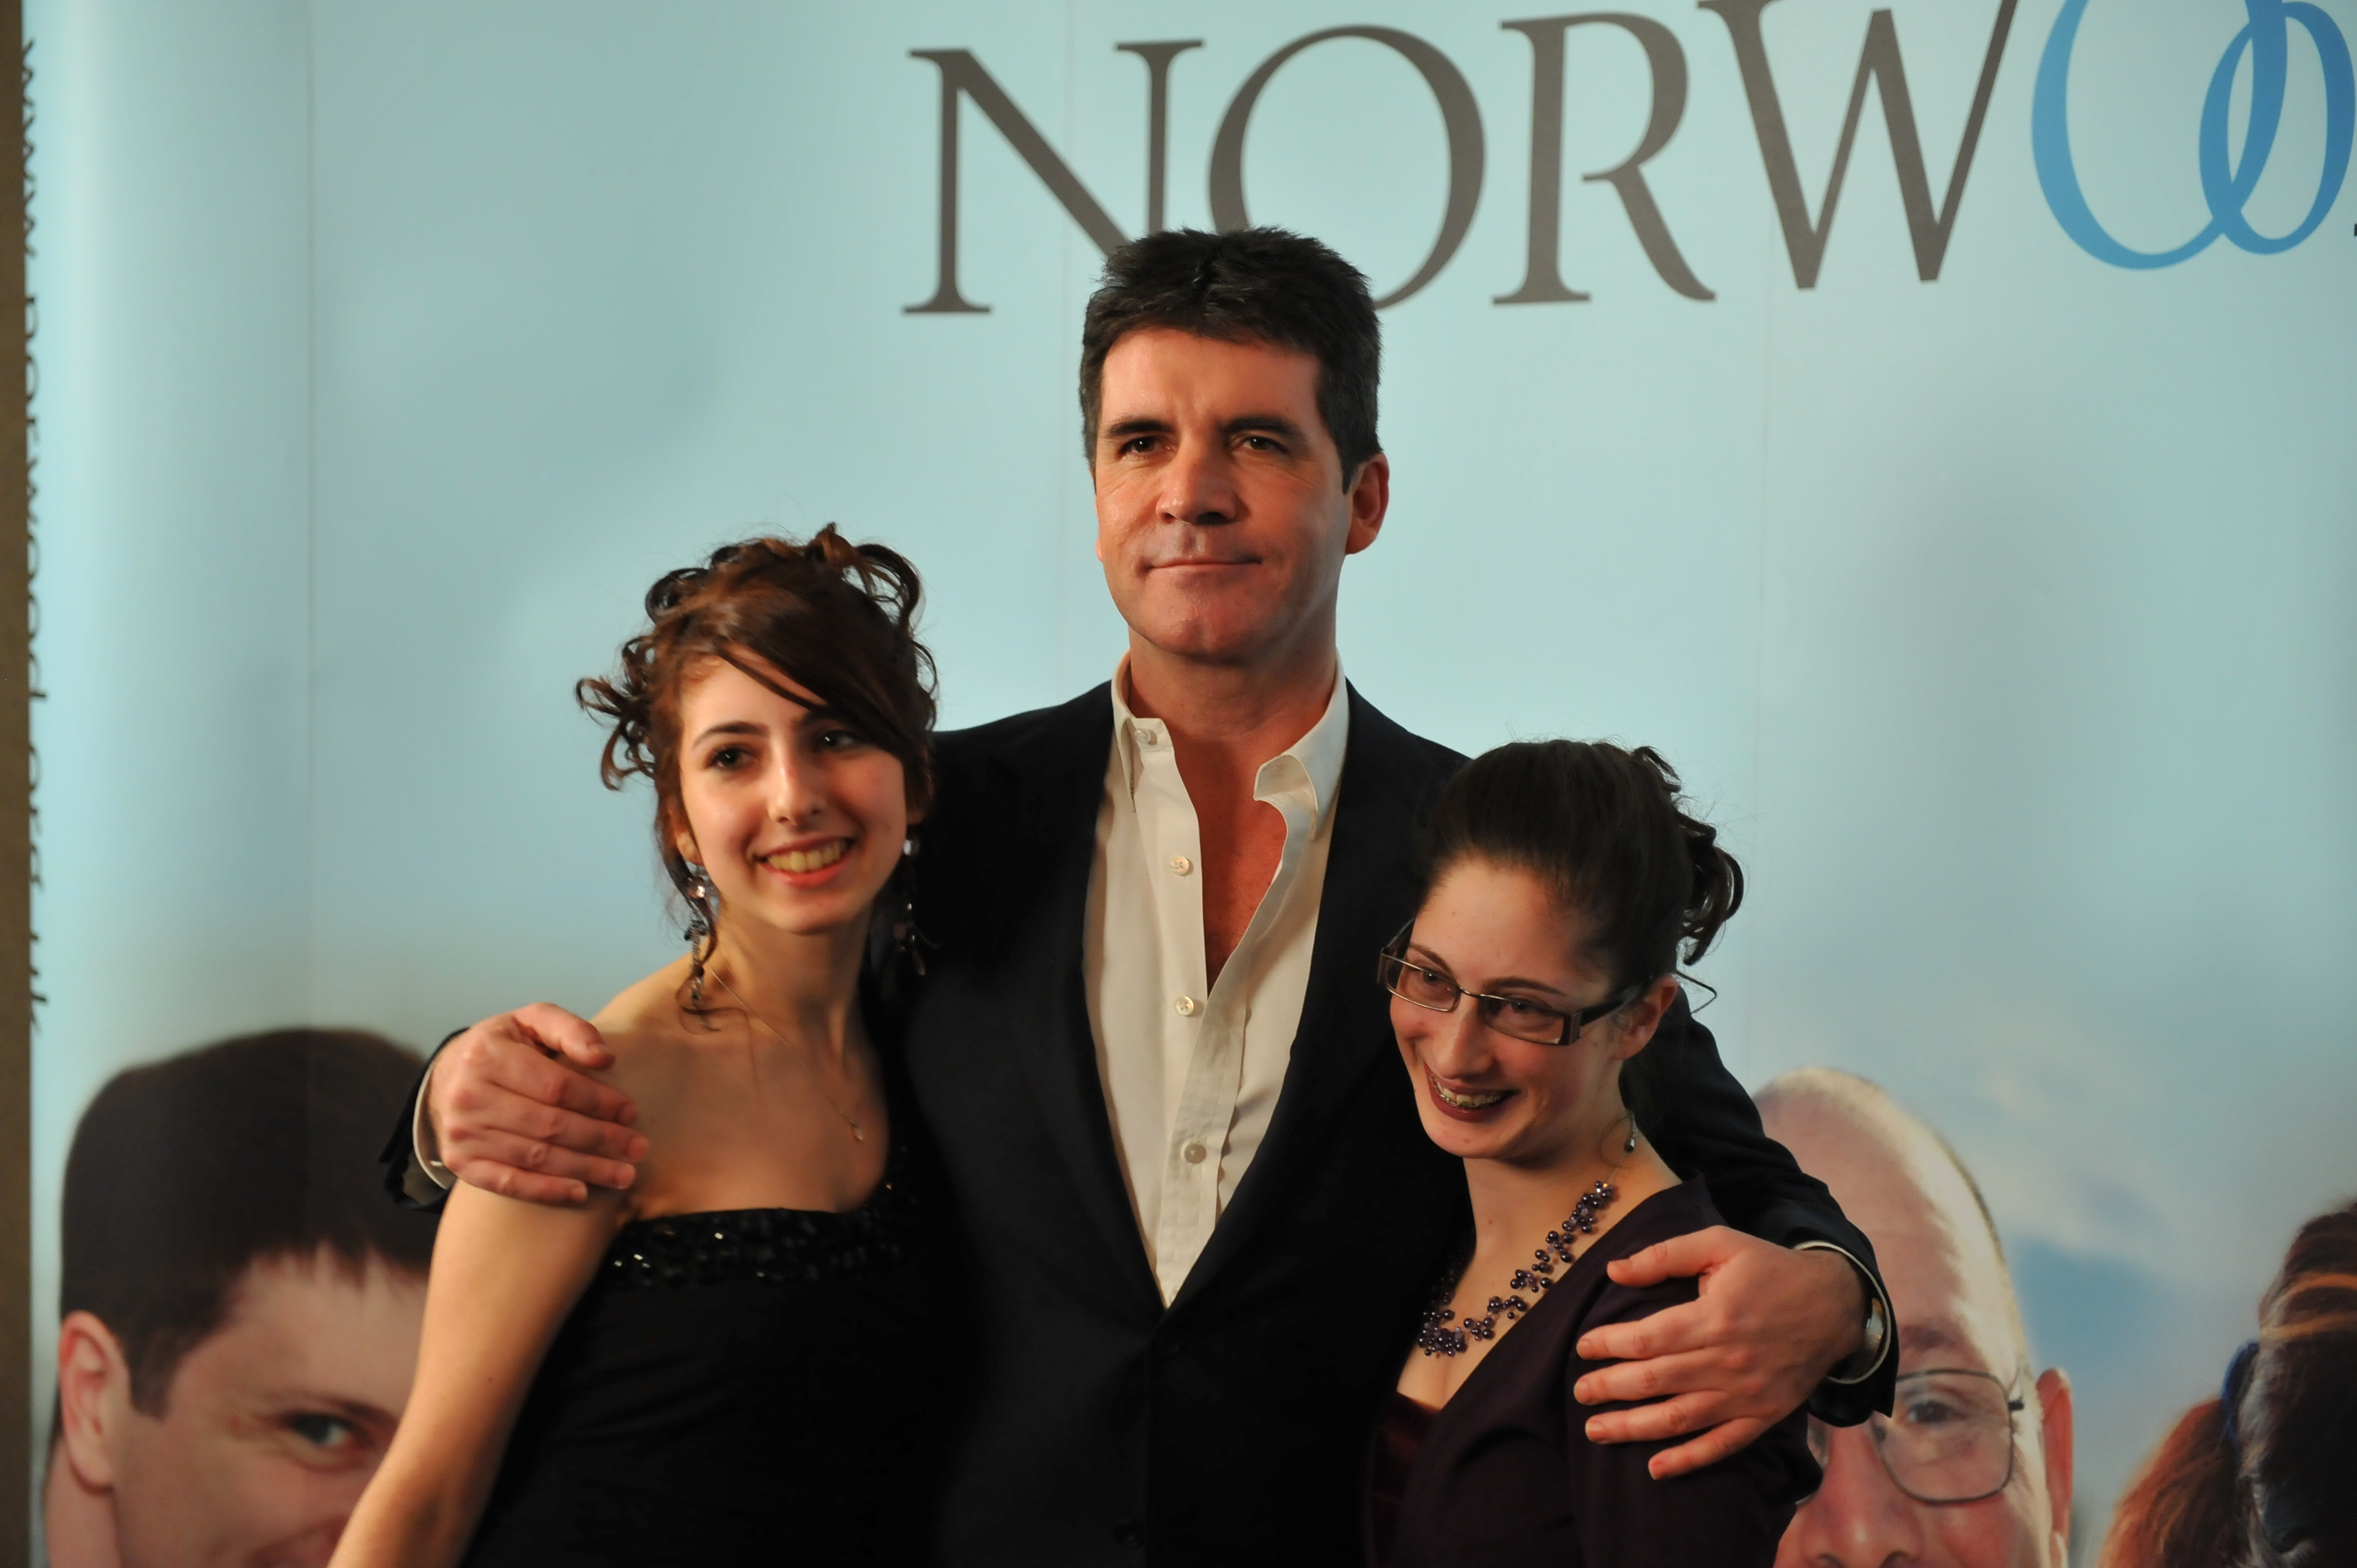 Simon Cowell with a Norwood service user